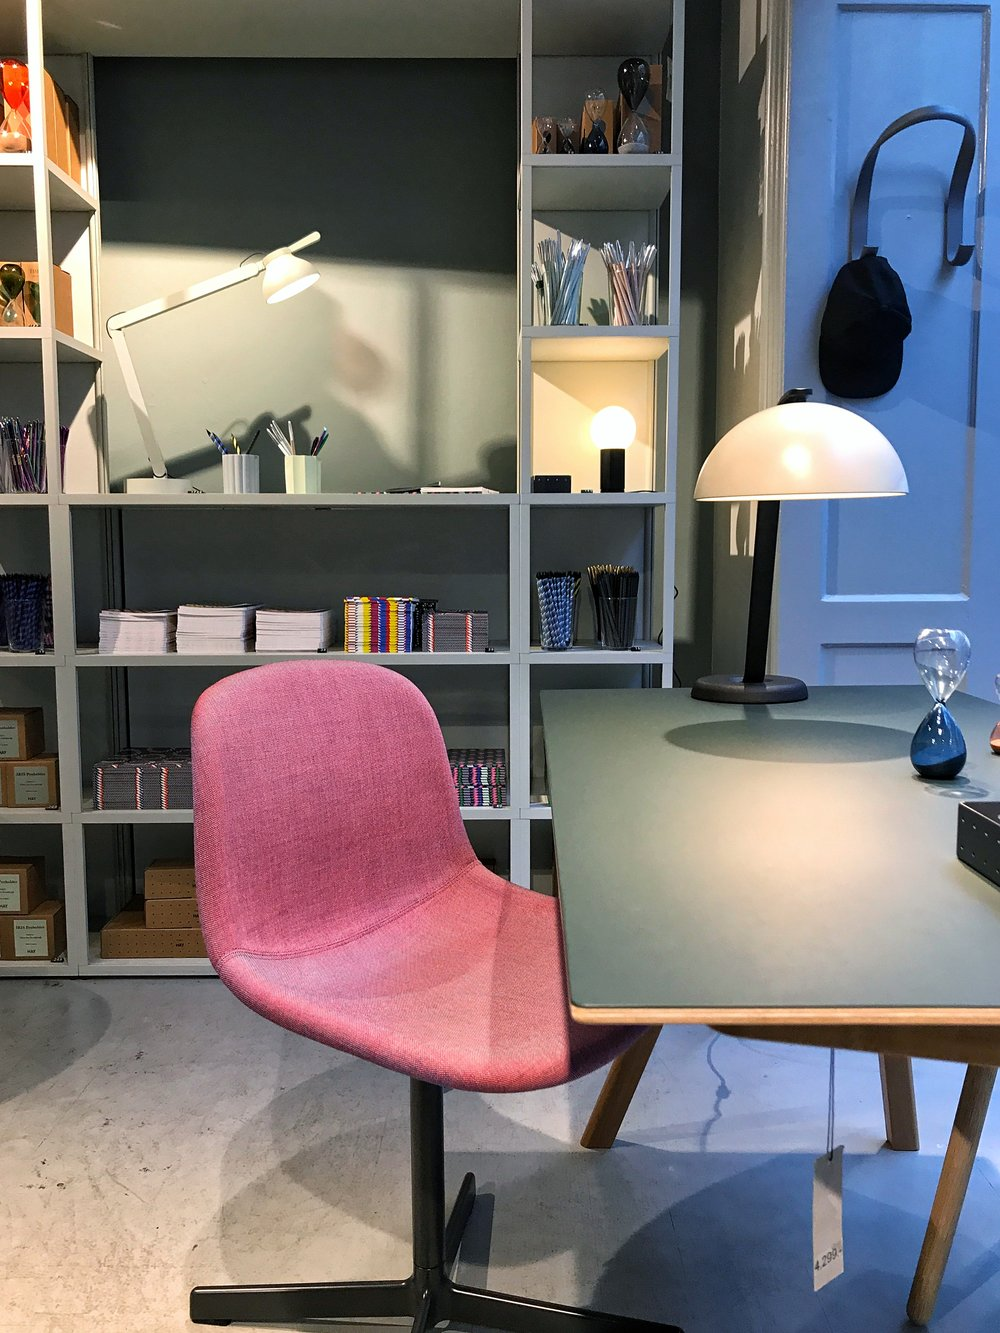 Lorla Studio | Copenhagen - Thoughts on Color